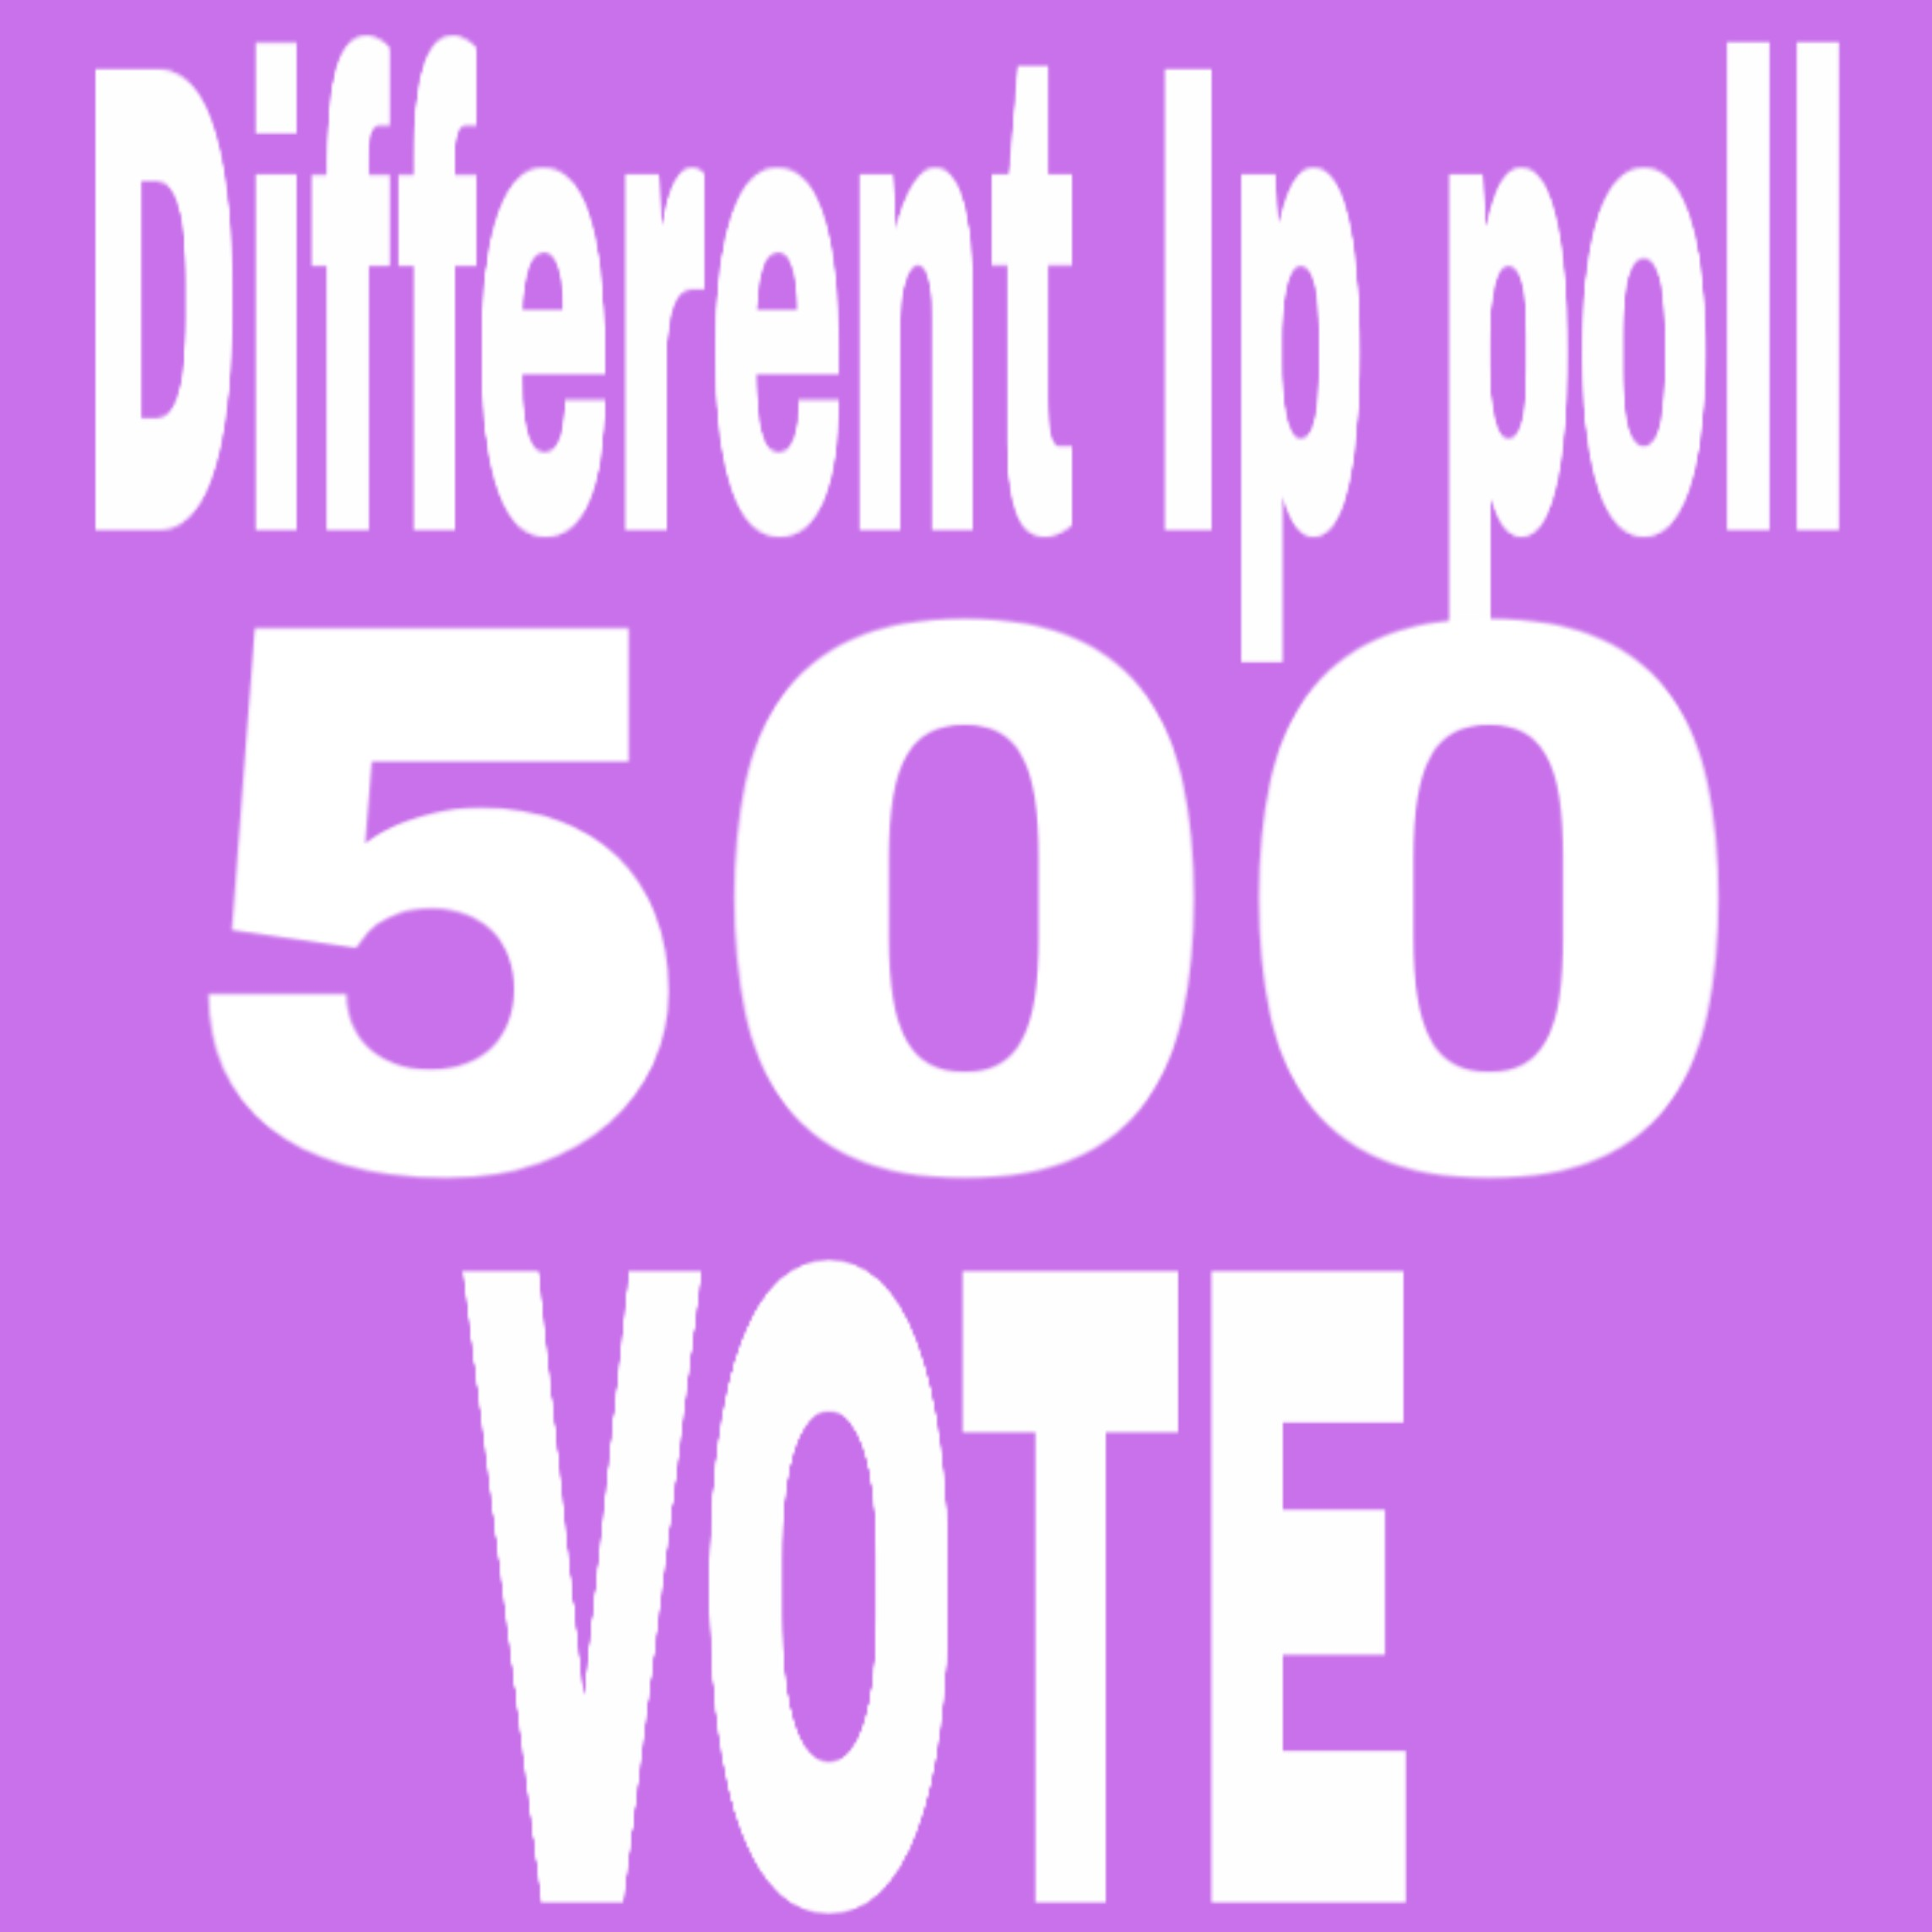 Buy you 500 different ip votes your online contest Poll